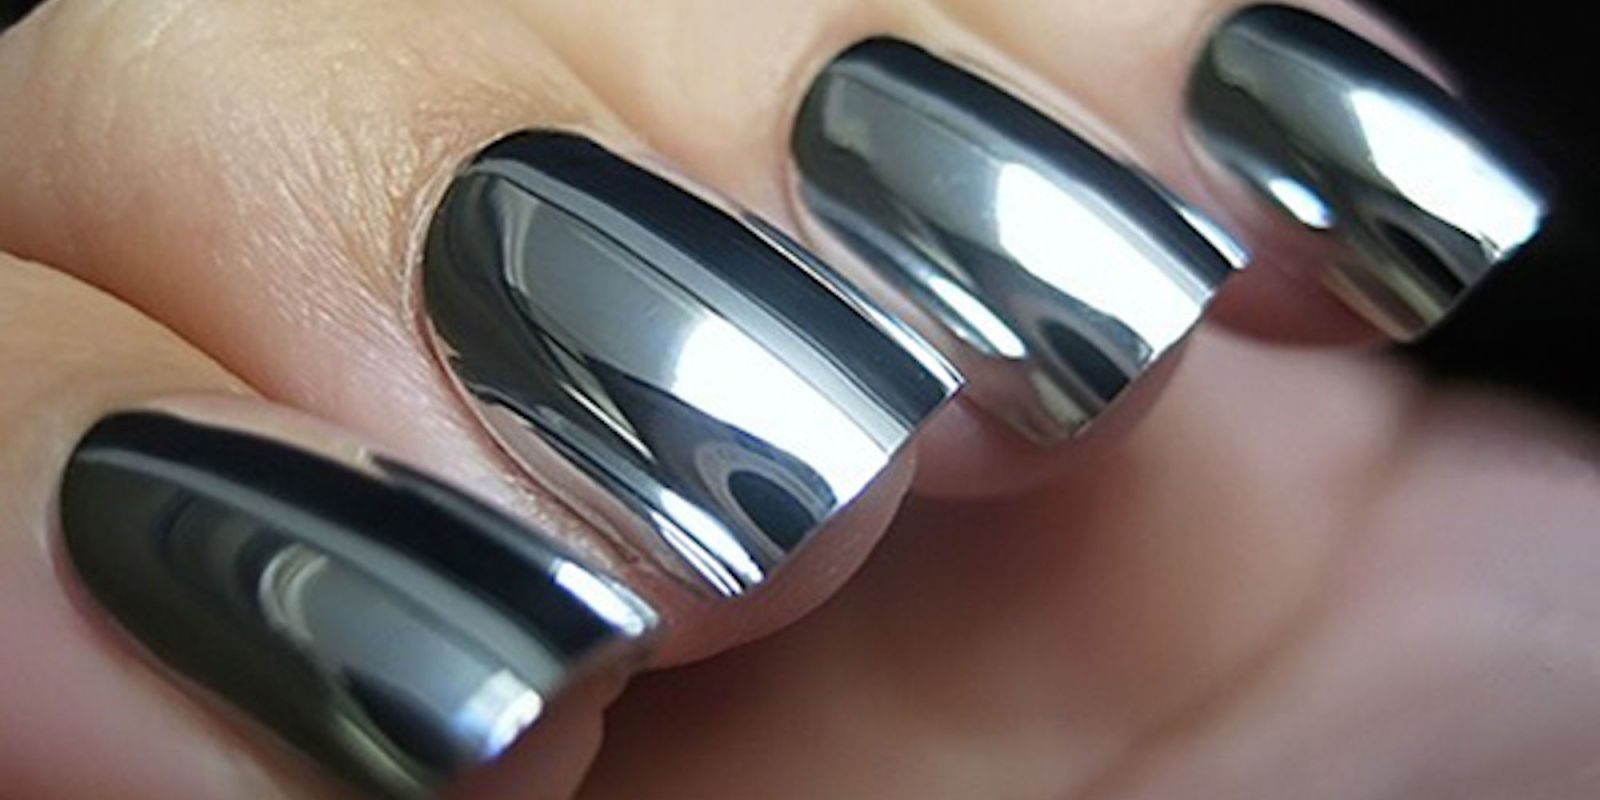 Mirrored Nail Varnish Is Now Something You Can Do Yourself At Home ...